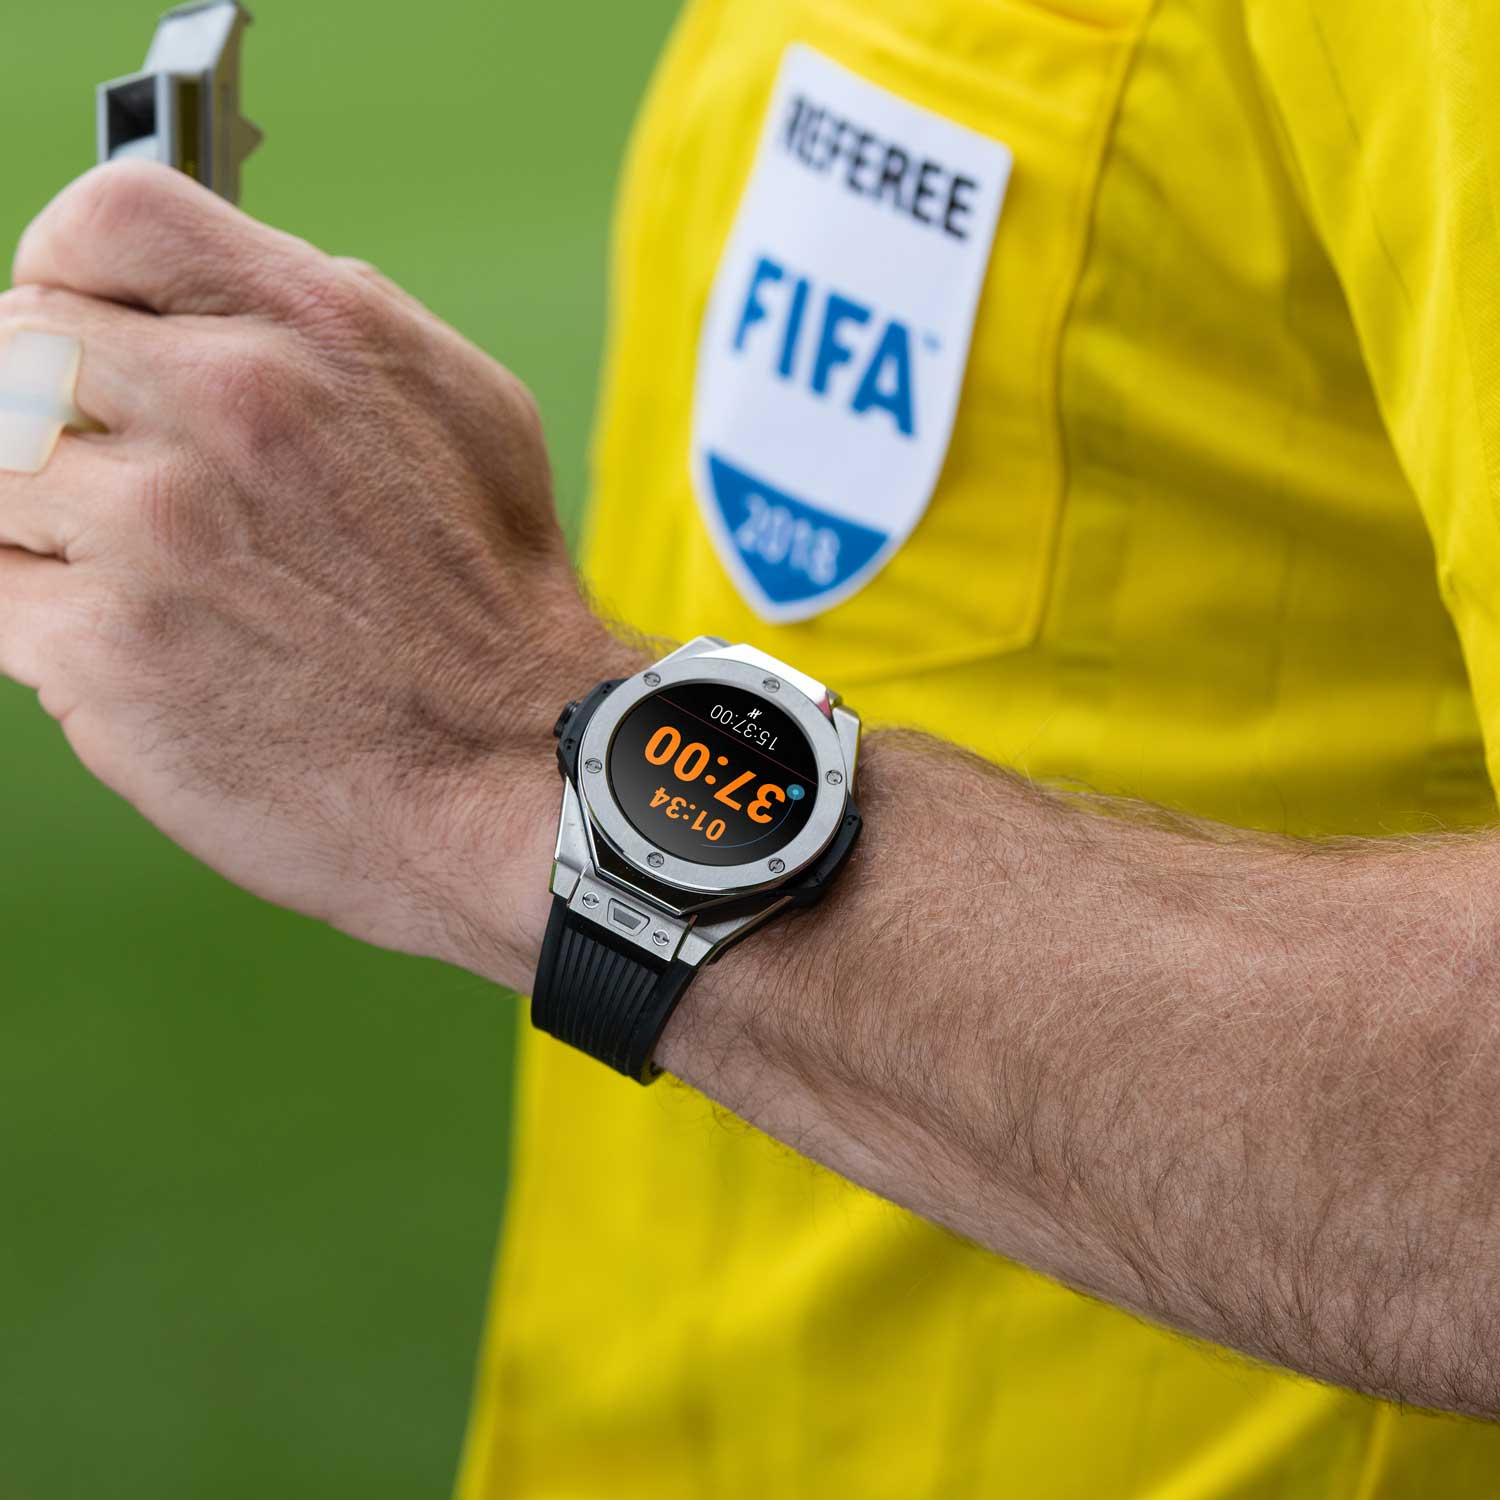 The Big Bang Referee 2018 FIFA World Cup RussiaTM was designed by Hublot on the request of FIFA for referees at World Cup 2018 in form of a Big Bang